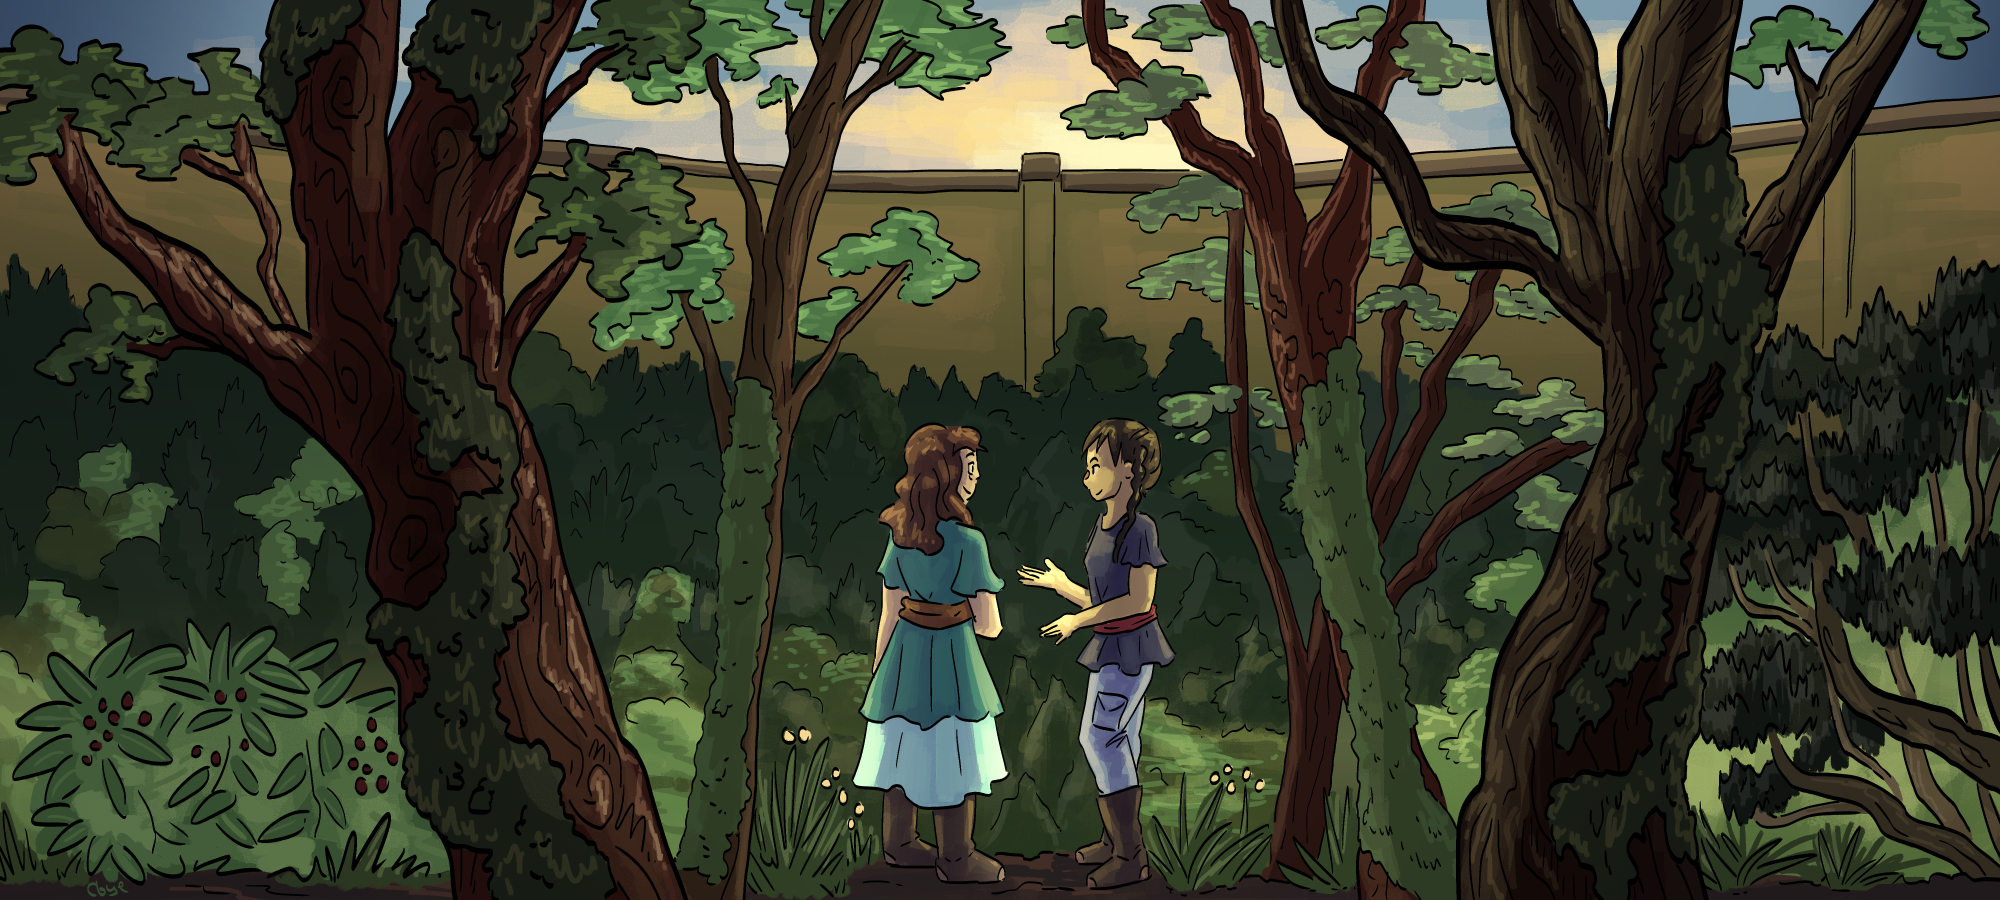 a digital illustration of two characters at sunrise in a forest valley, overlooking the valley and the yellow wall surrounding it